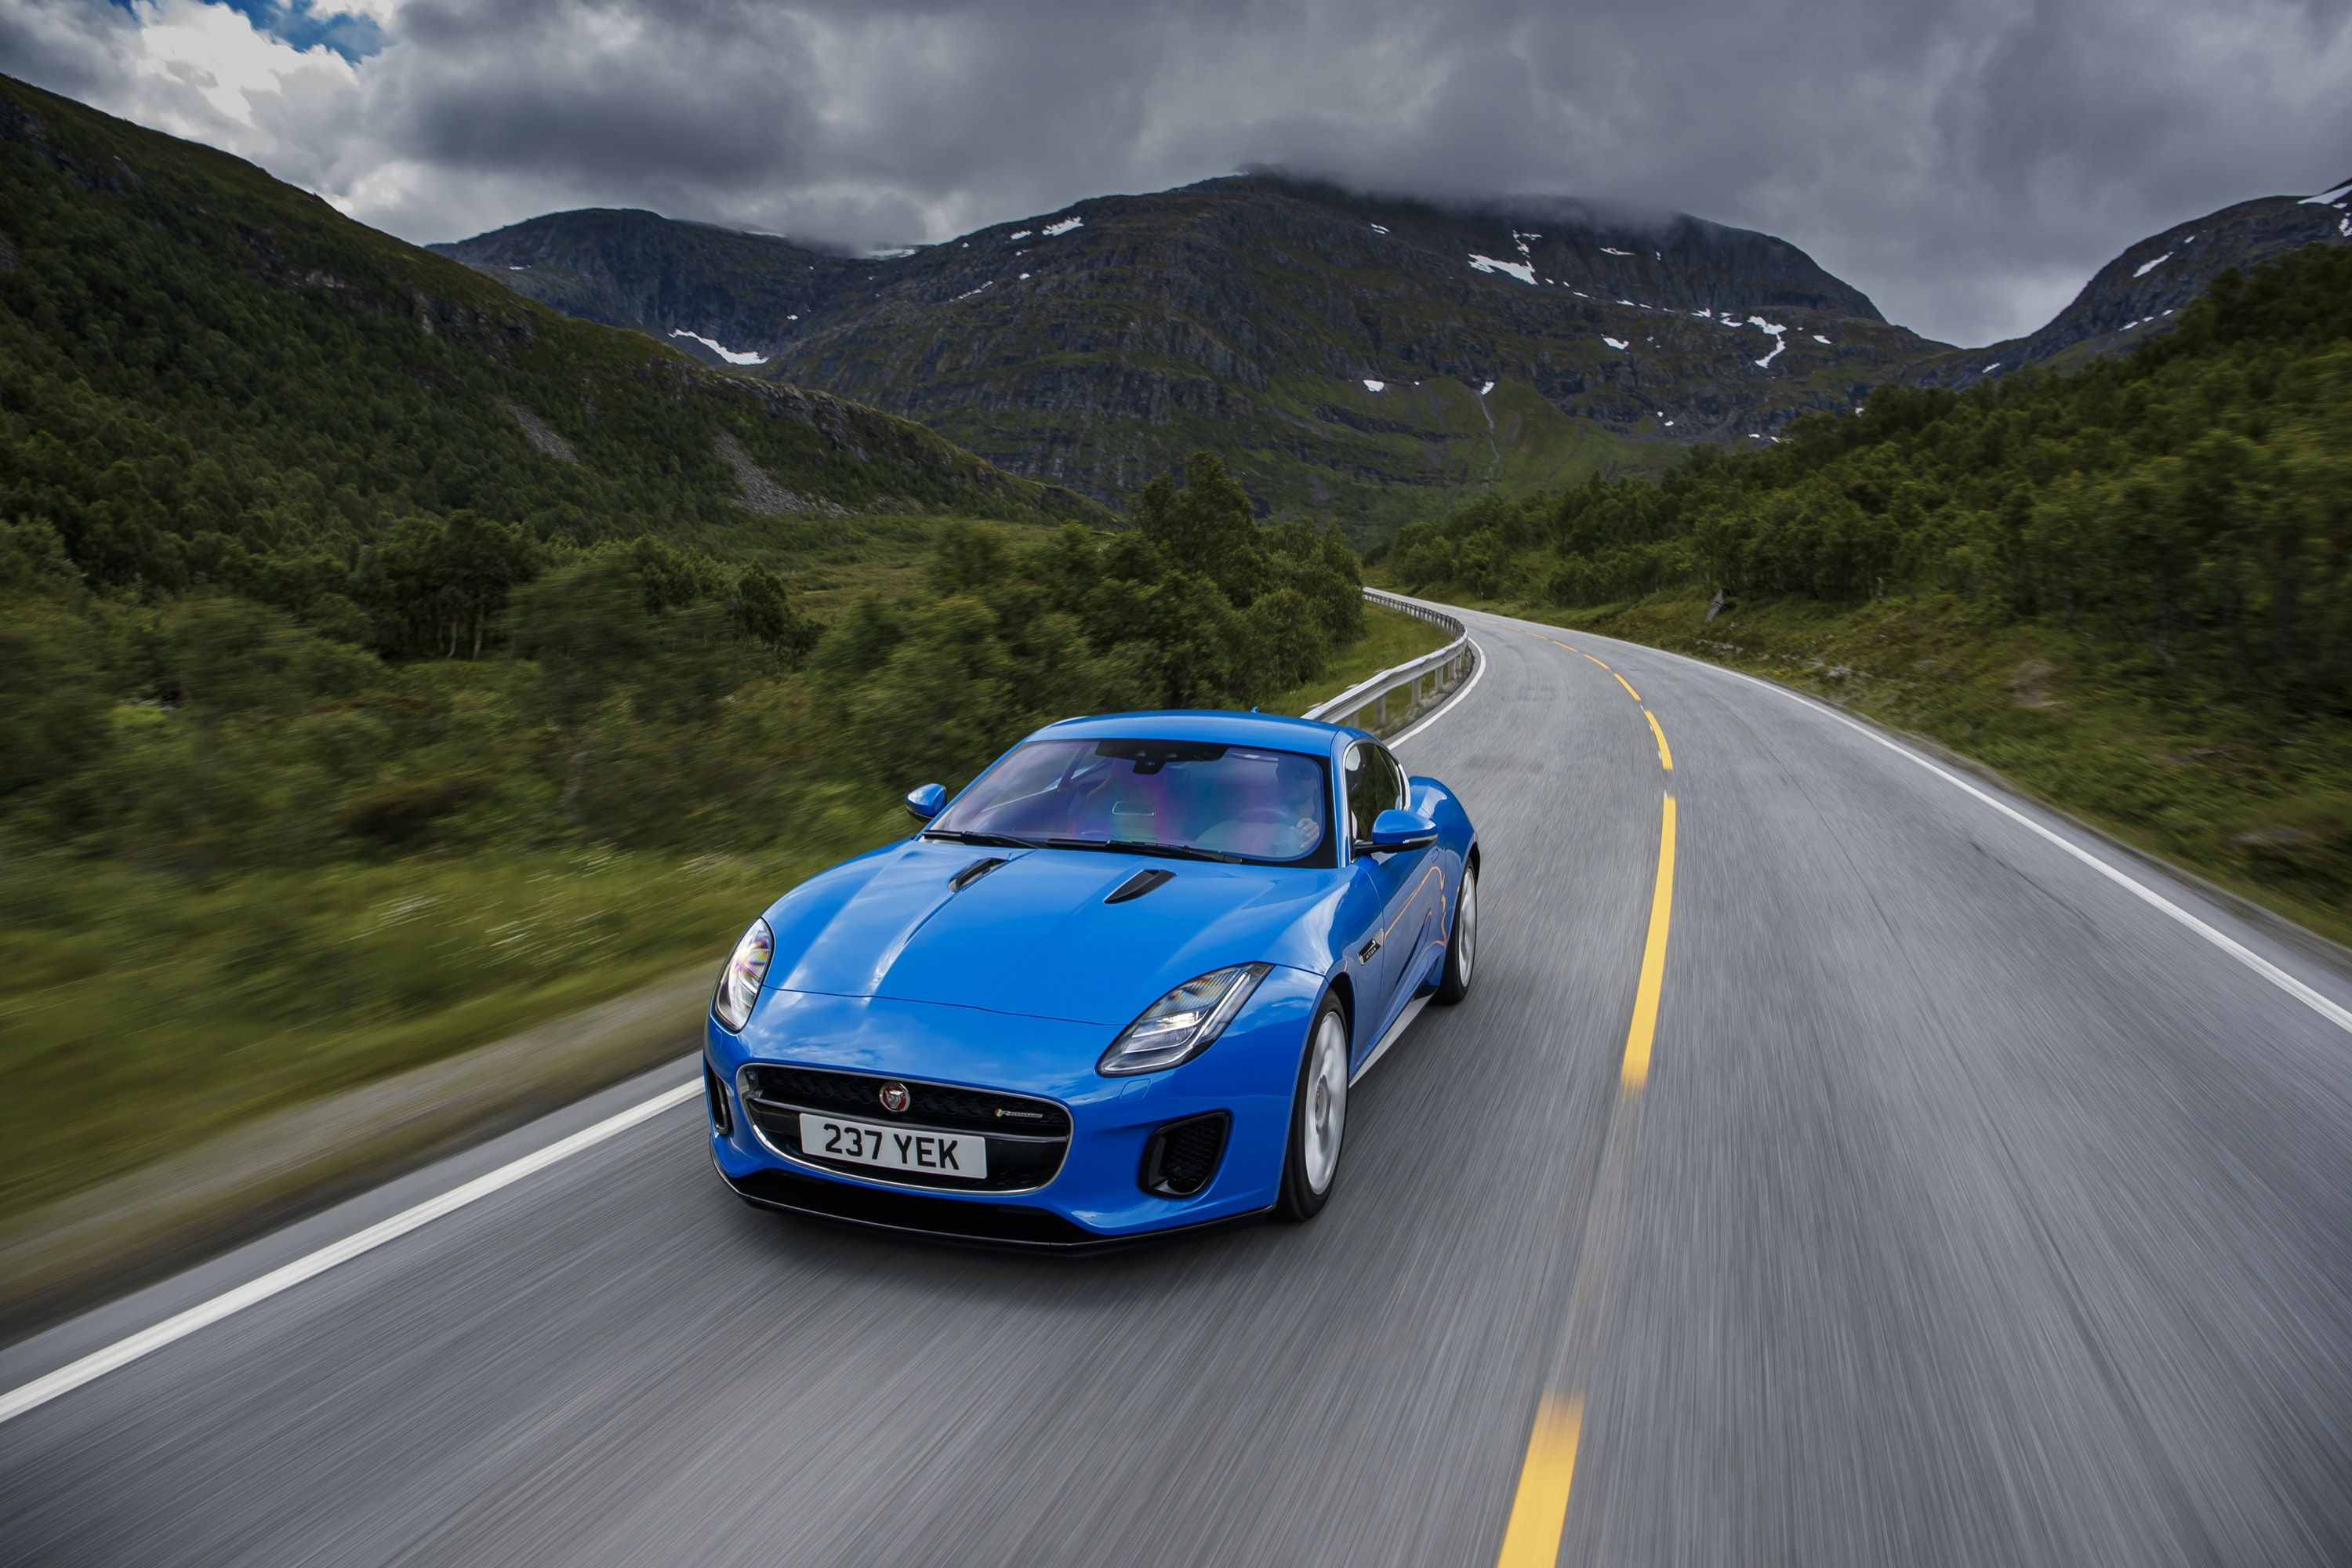 Jaguar F-Type driving down road from front